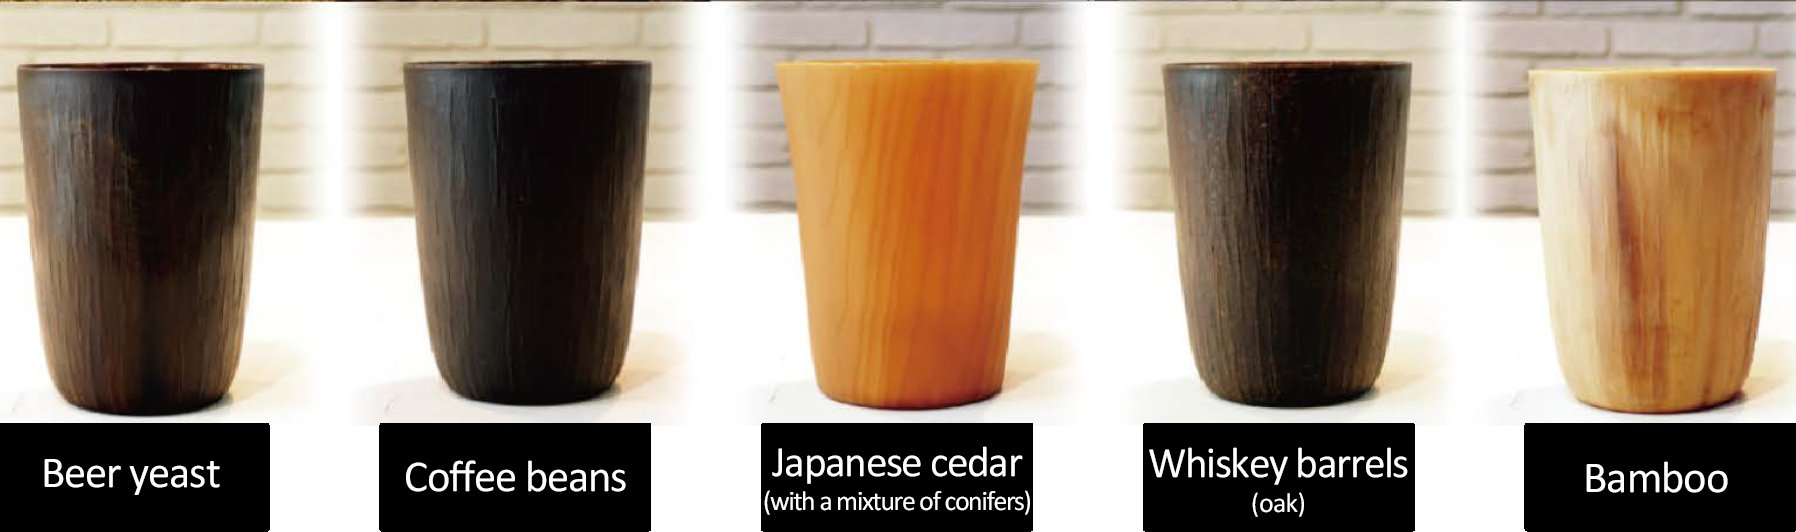 Photo: Reusable cups from beer yeast, coffee grinds, whiskey barrels, Japanese cedar (with a mixture of conifers), Whiskey barrels (oak), and Bamboo.